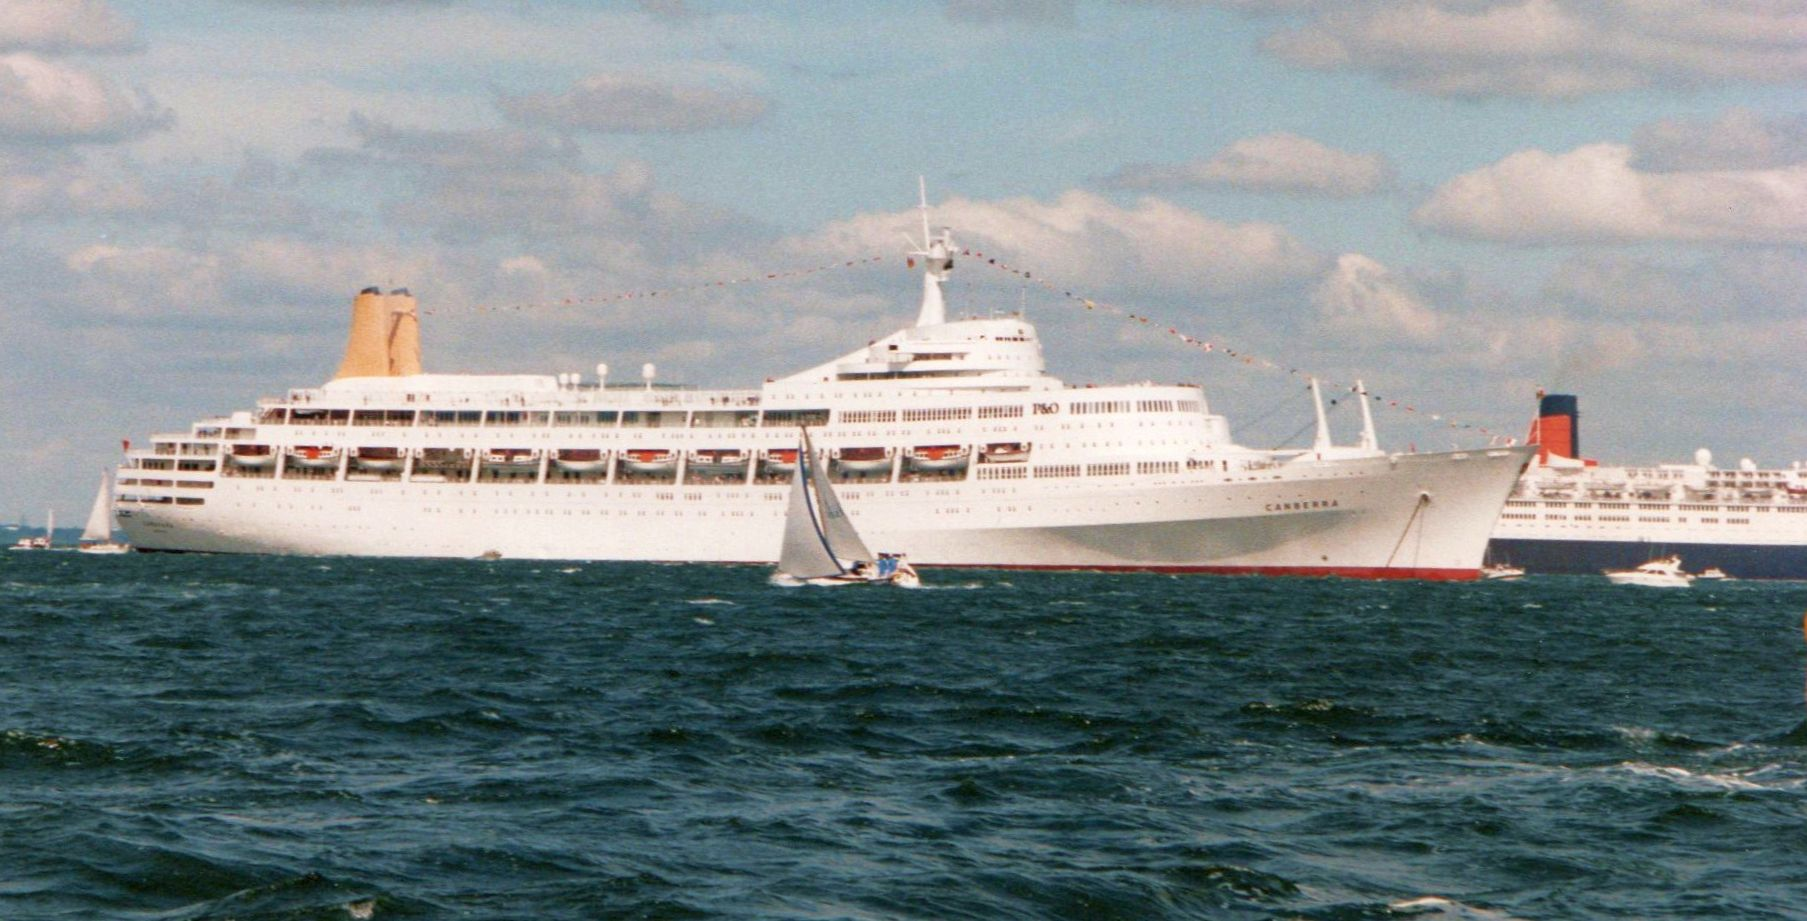 SS Canberra and RMS Queen Elizabeth 2 in the English Channel on June 5, 1984.